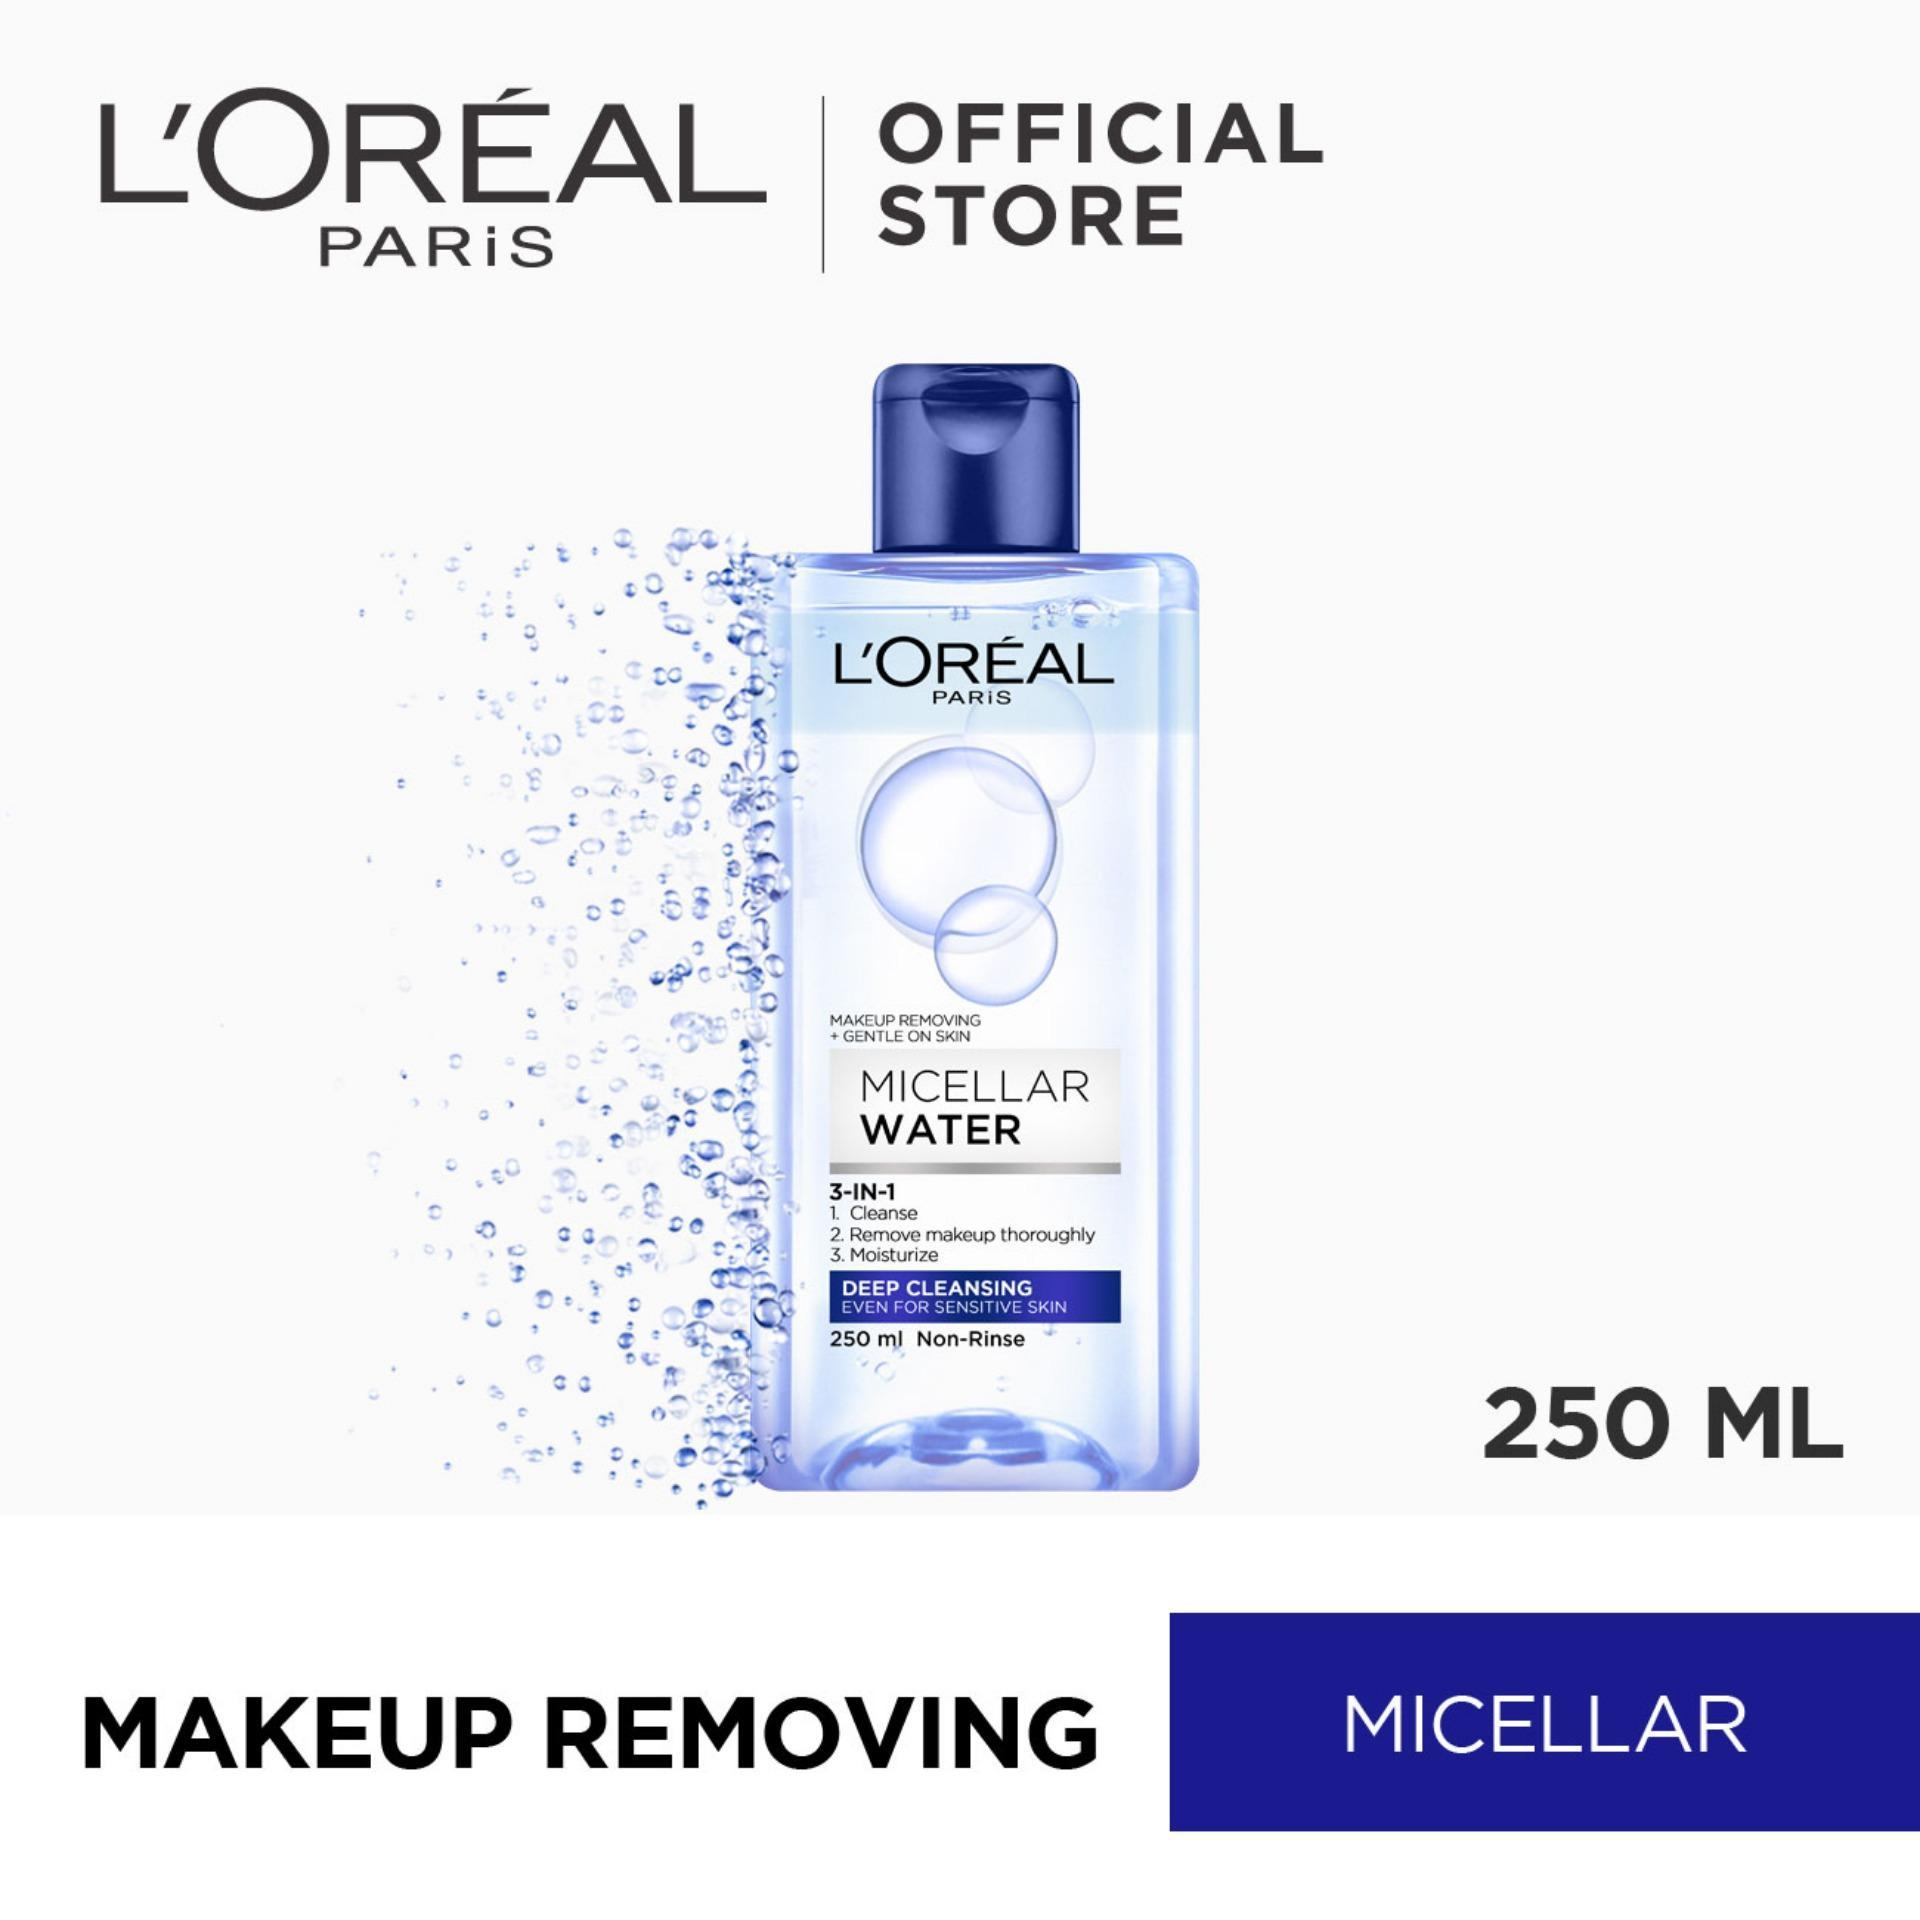 Makeup Remover Brands Wipes On Sale Prices Set Reviews Biore Cleansing Oil 150ml Make Up Loreal Paris Micellar Water Removing Dark Blue 250ml